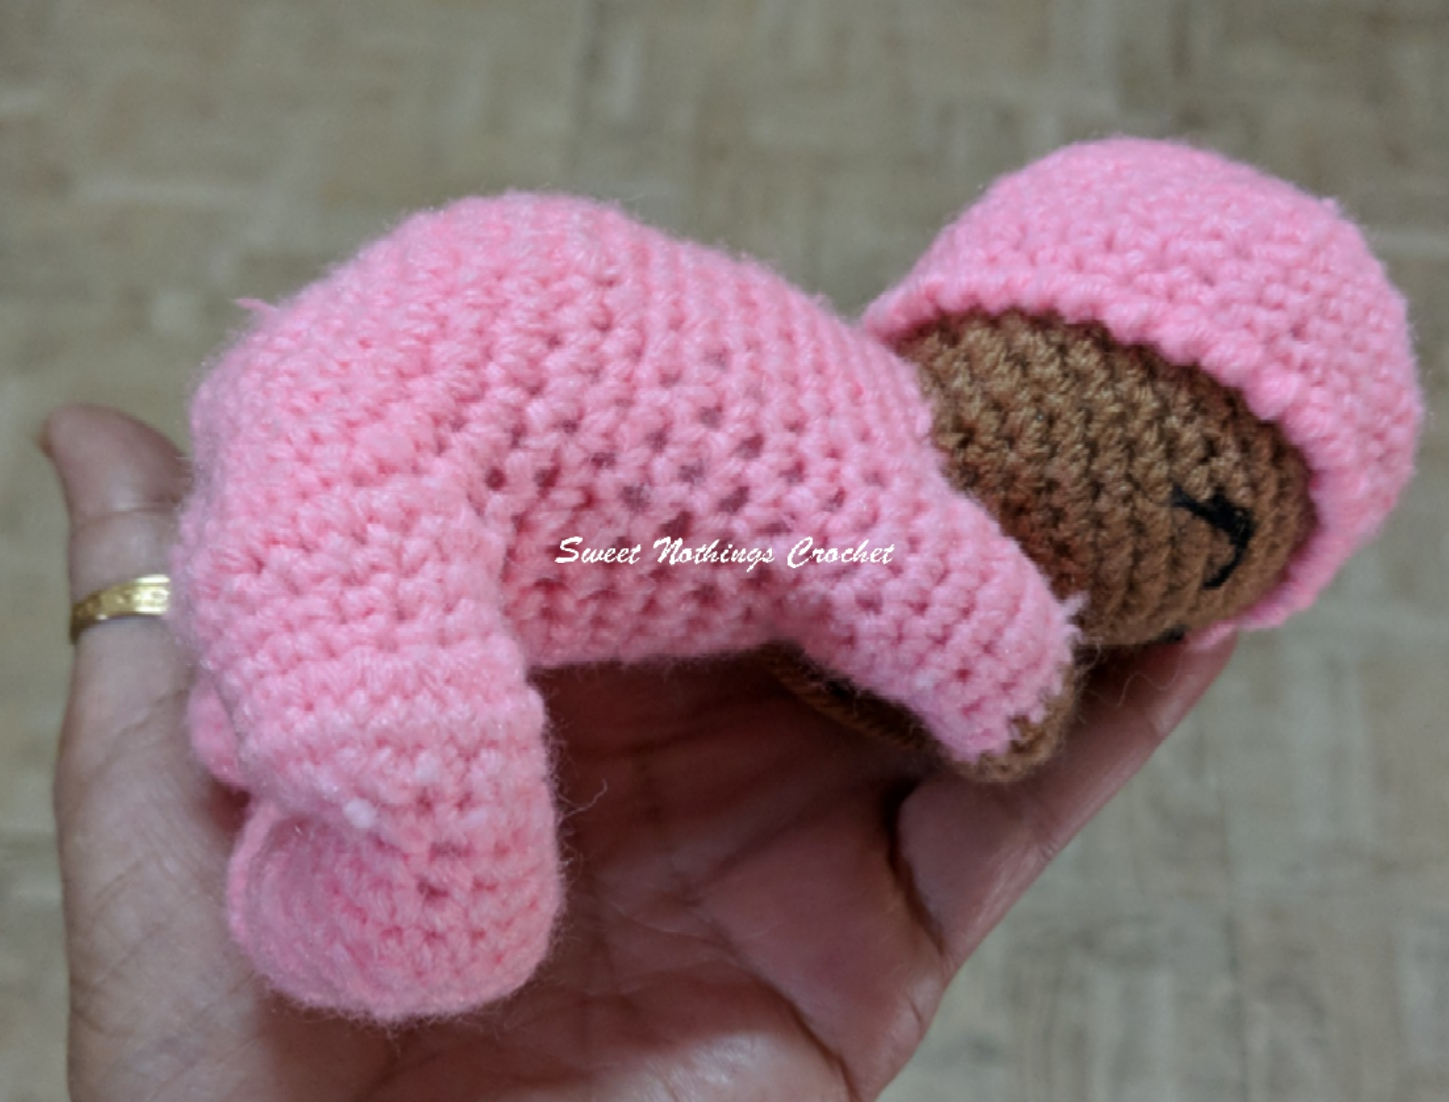 Sweet Nothings Crochet: SLEEPING BABY LOVEY